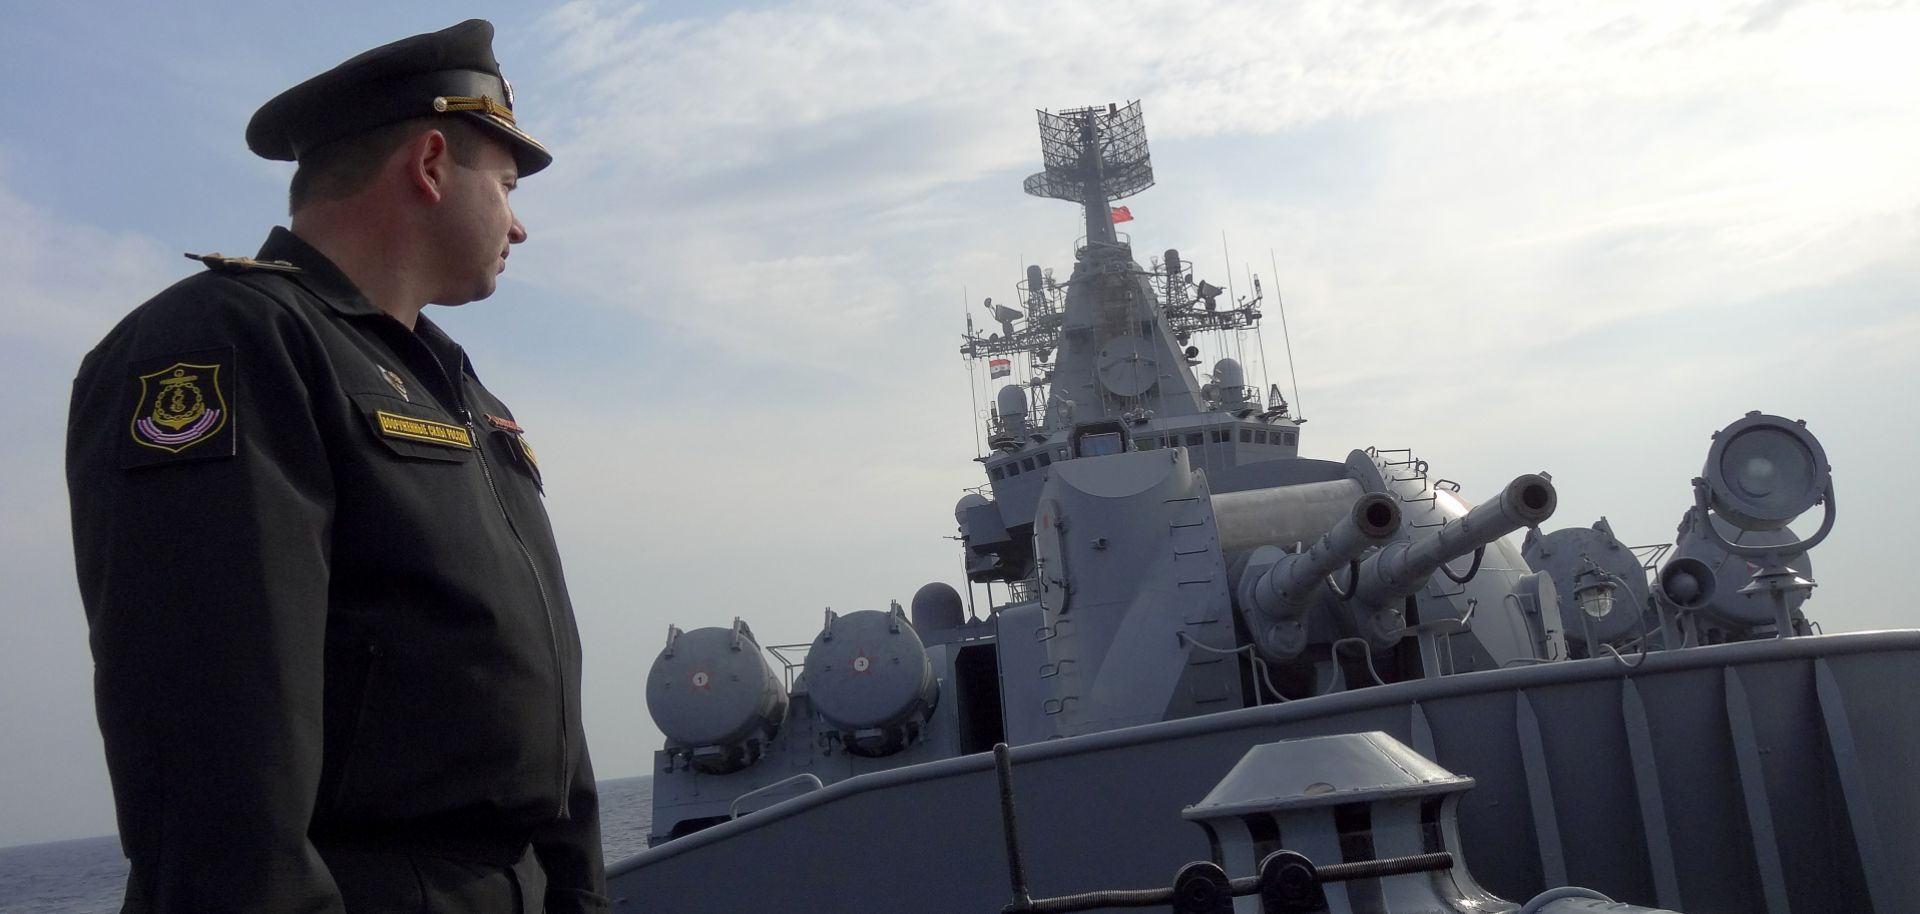 The Russian missile cruiser Moskva patrols off the coast of Syria in this December 2015 photo.